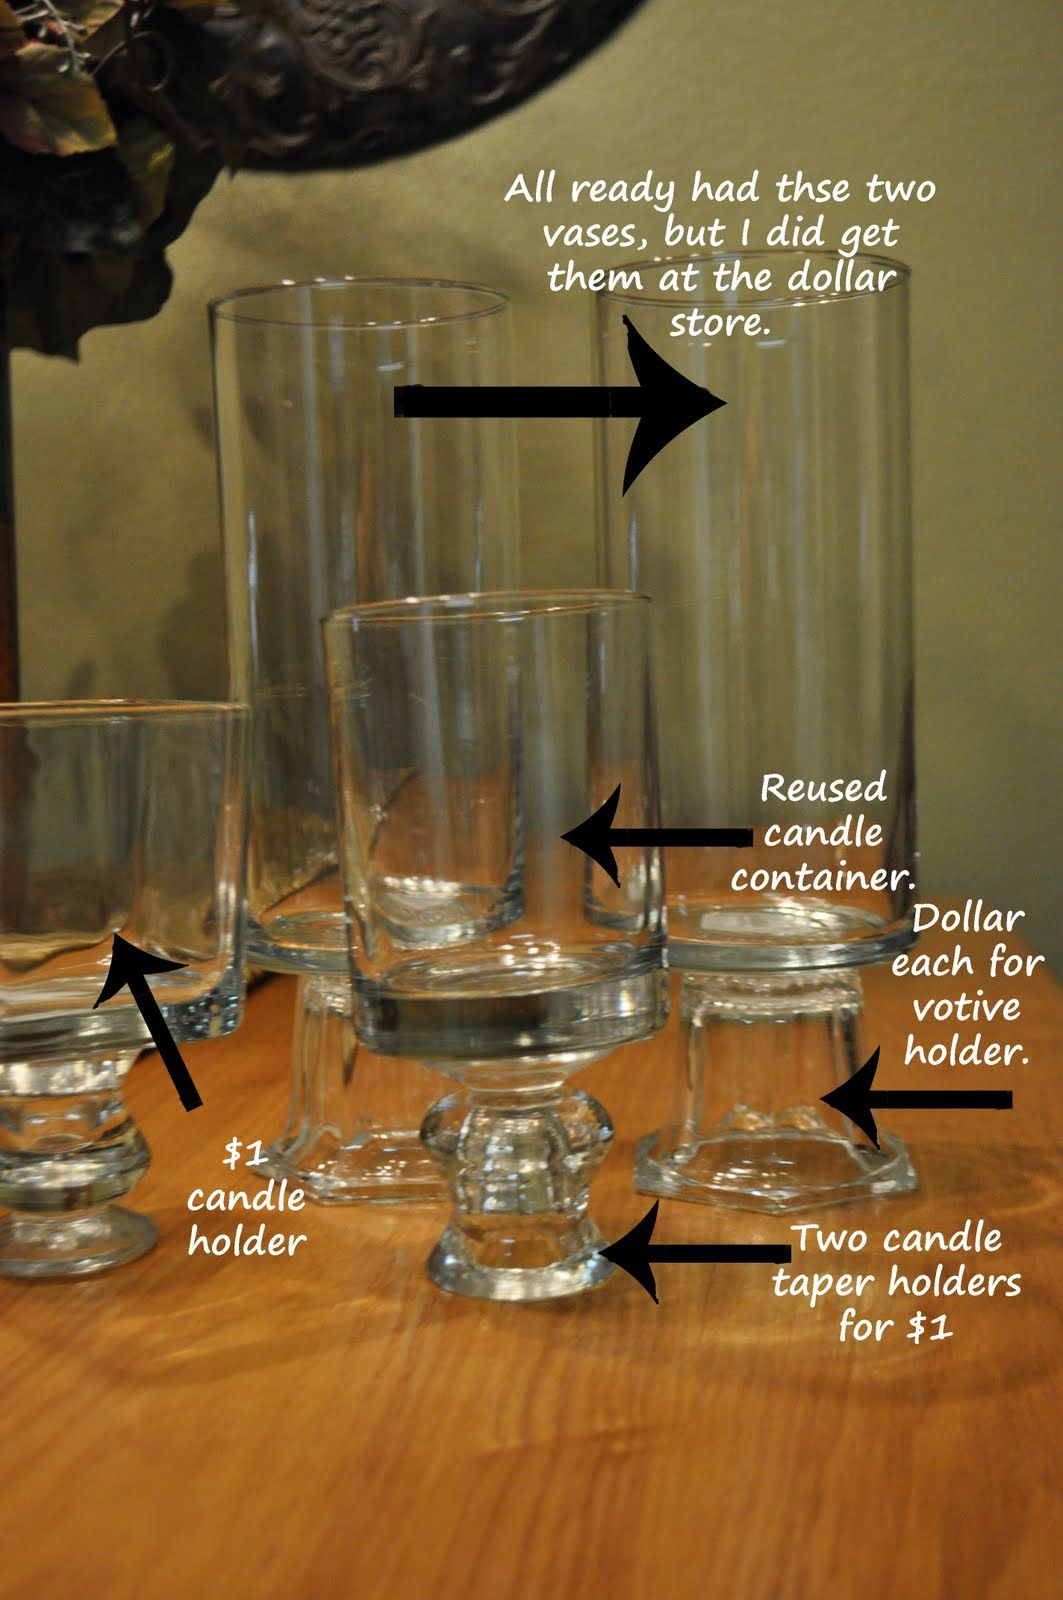 Remarkable For The Candy Bar Dollar Store Vases And Candle Sticks Interior Design Ideas Grebswwsoteloinfo